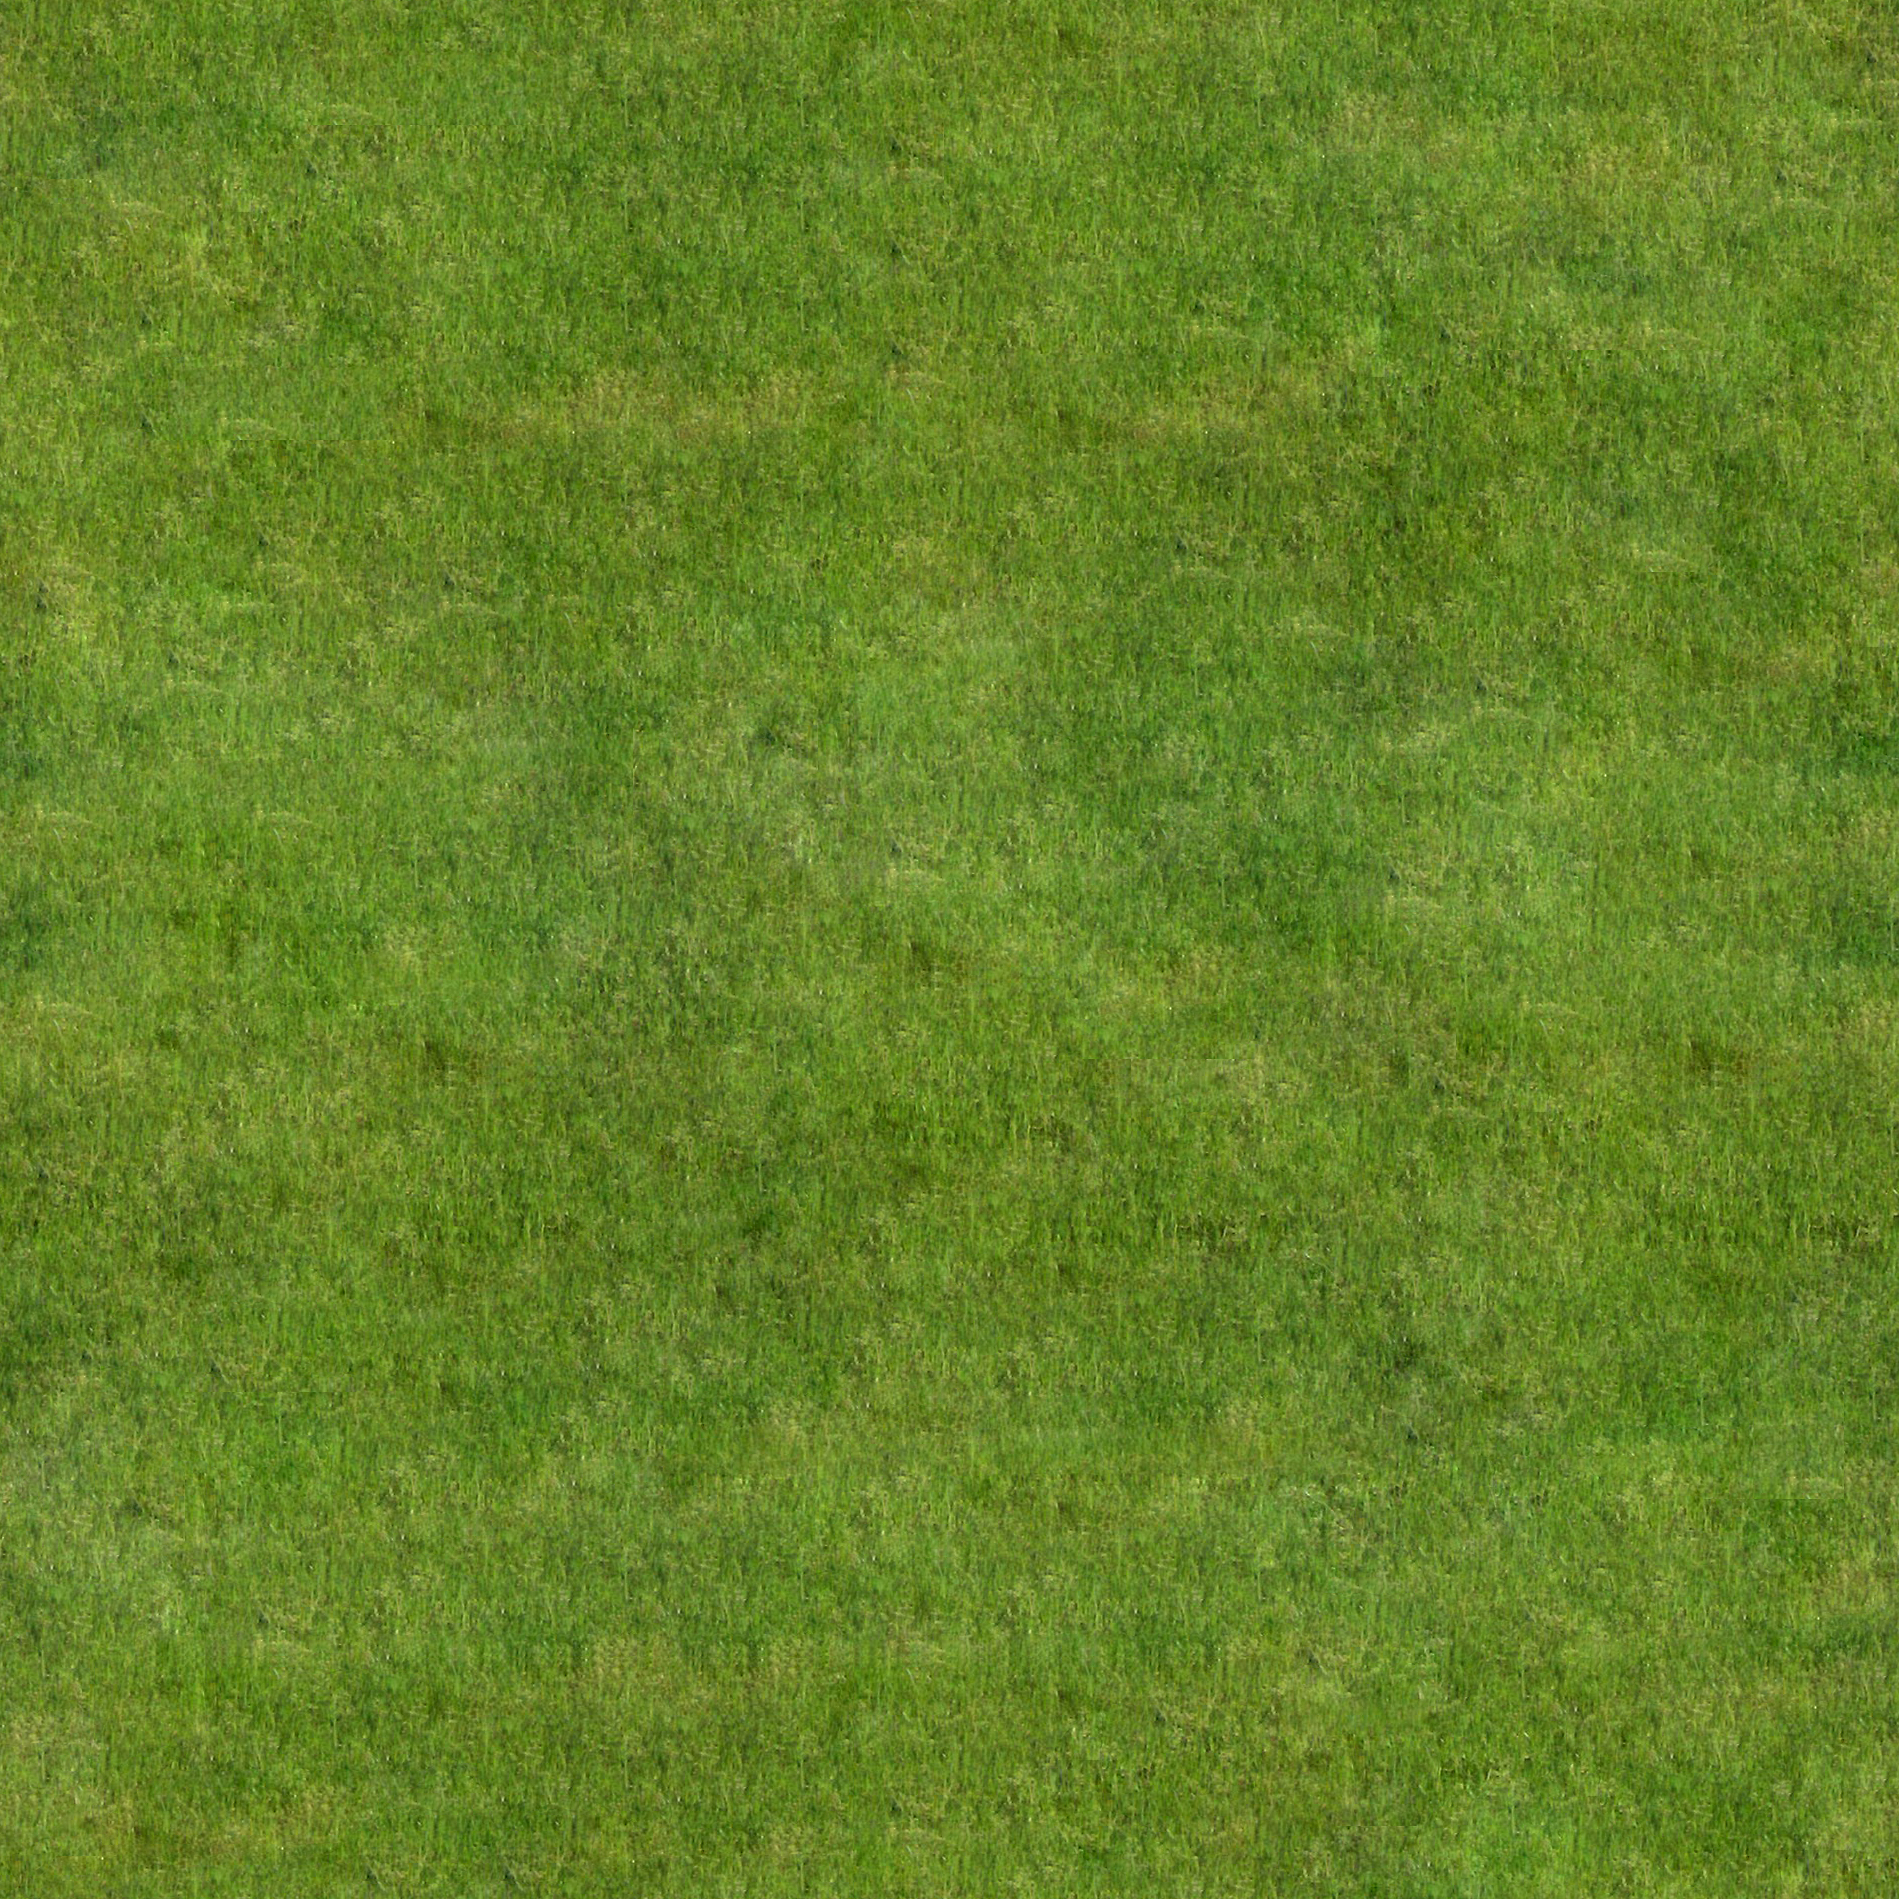 tileable grass texture by krouton3 on deviantart rh krouton3 deviantart com Cartoon Dirt Texture Cartoon Dirt Texture